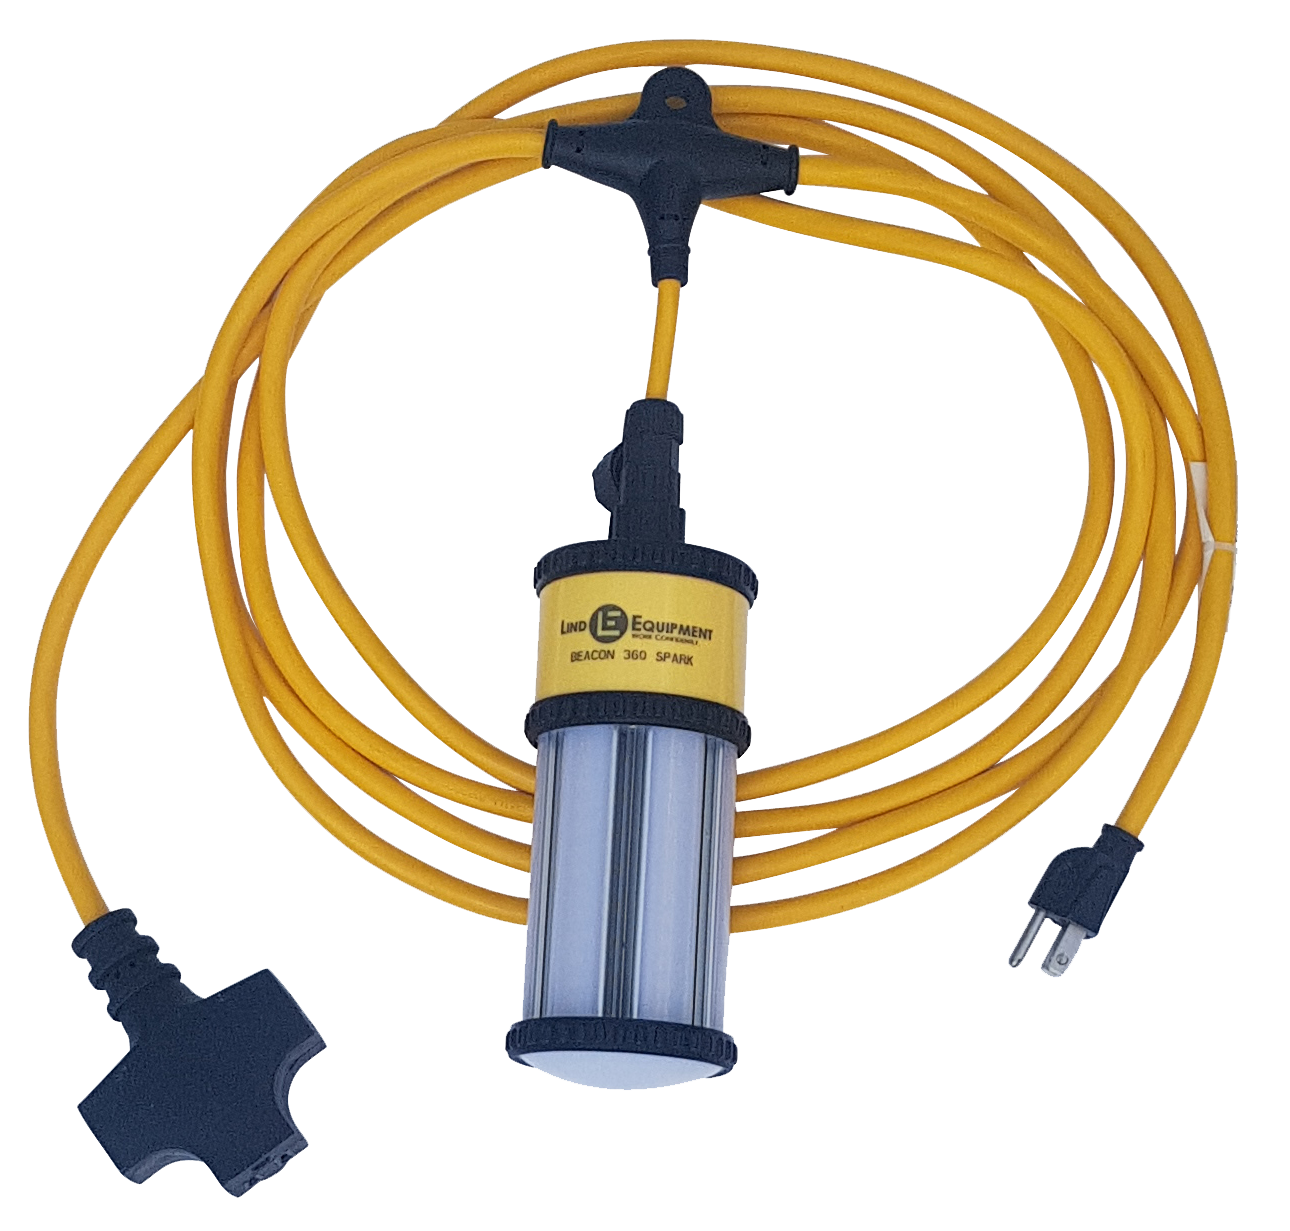 - Never use Stringlights again with this modular, daisy-chainable small area light.Designed to replace stringlights for increased efficiency and flexibility.